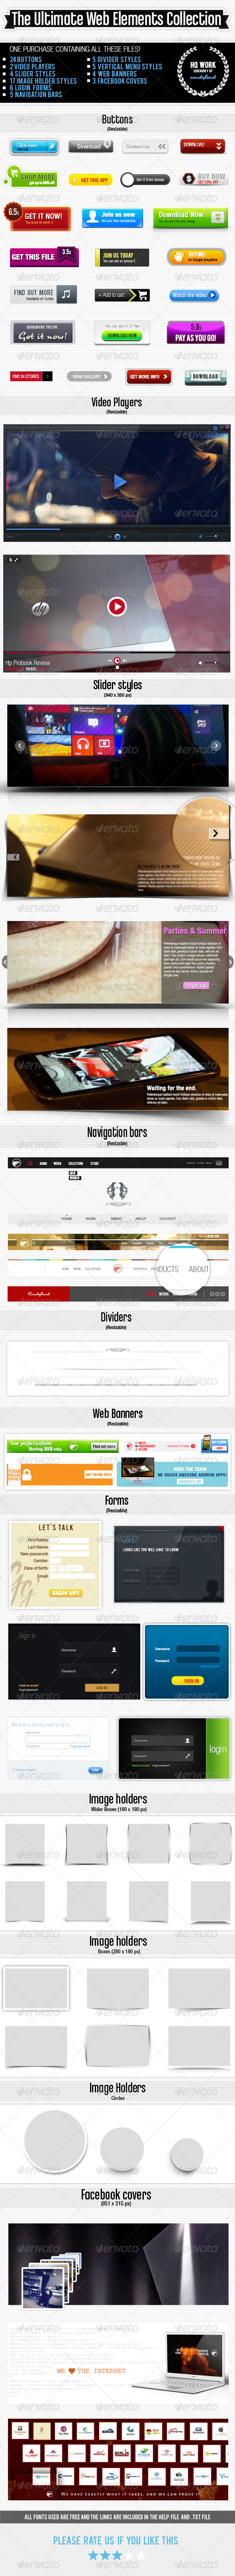 GraphicRiver Ultimate Web-Elements Collection 4569170